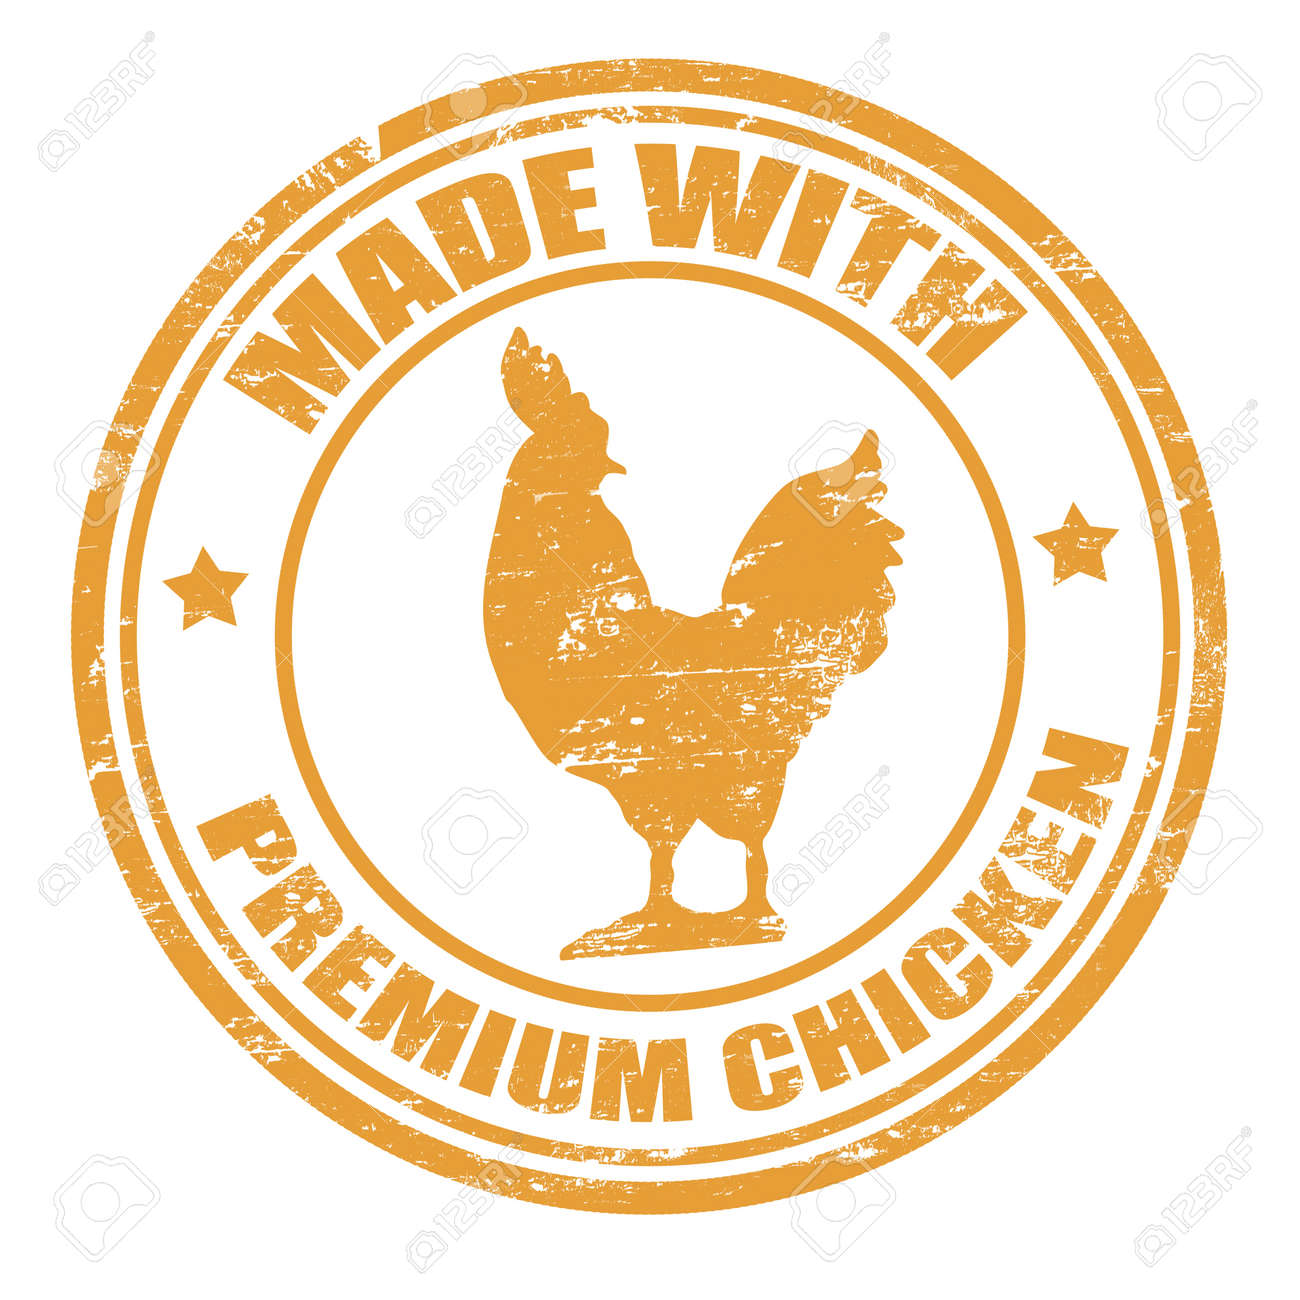 Grunge Office Rubber Stamp With The Text Made Premium Chicken Written Inside Stock Vector